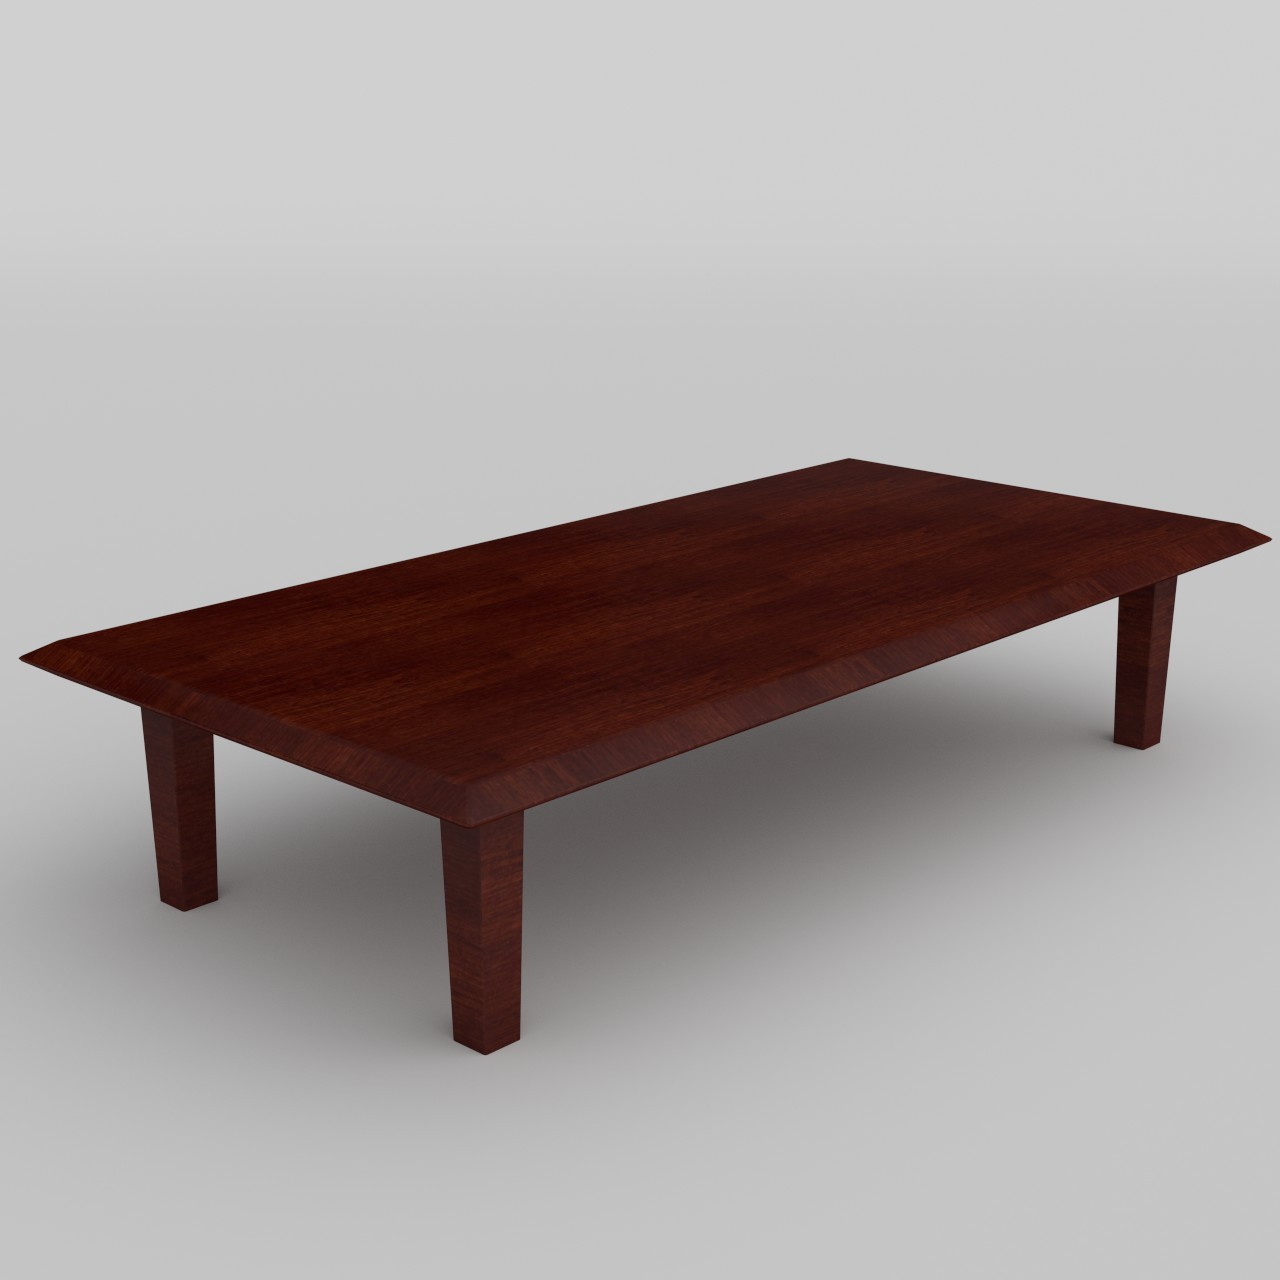 Table, Desk nr.09 (uv unwrapped, textured)